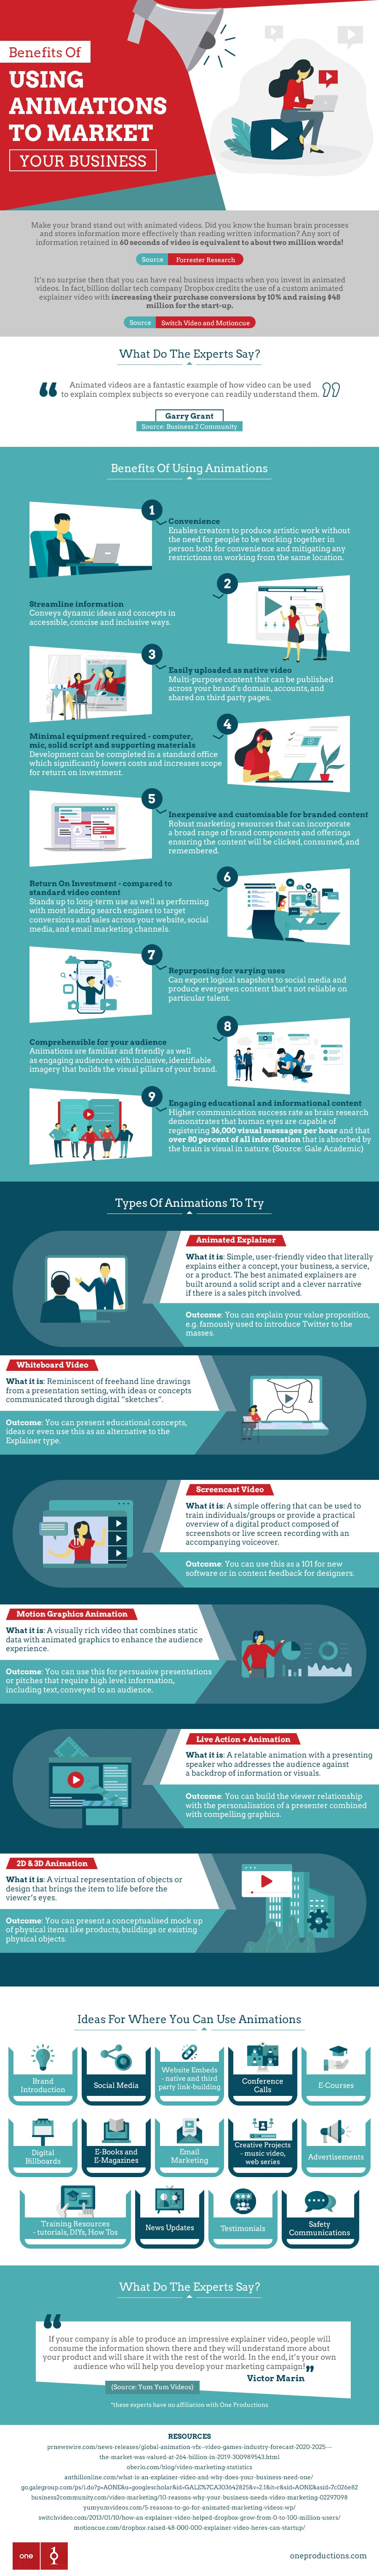 Benefits of Using Animations To Market Your Business, infographic